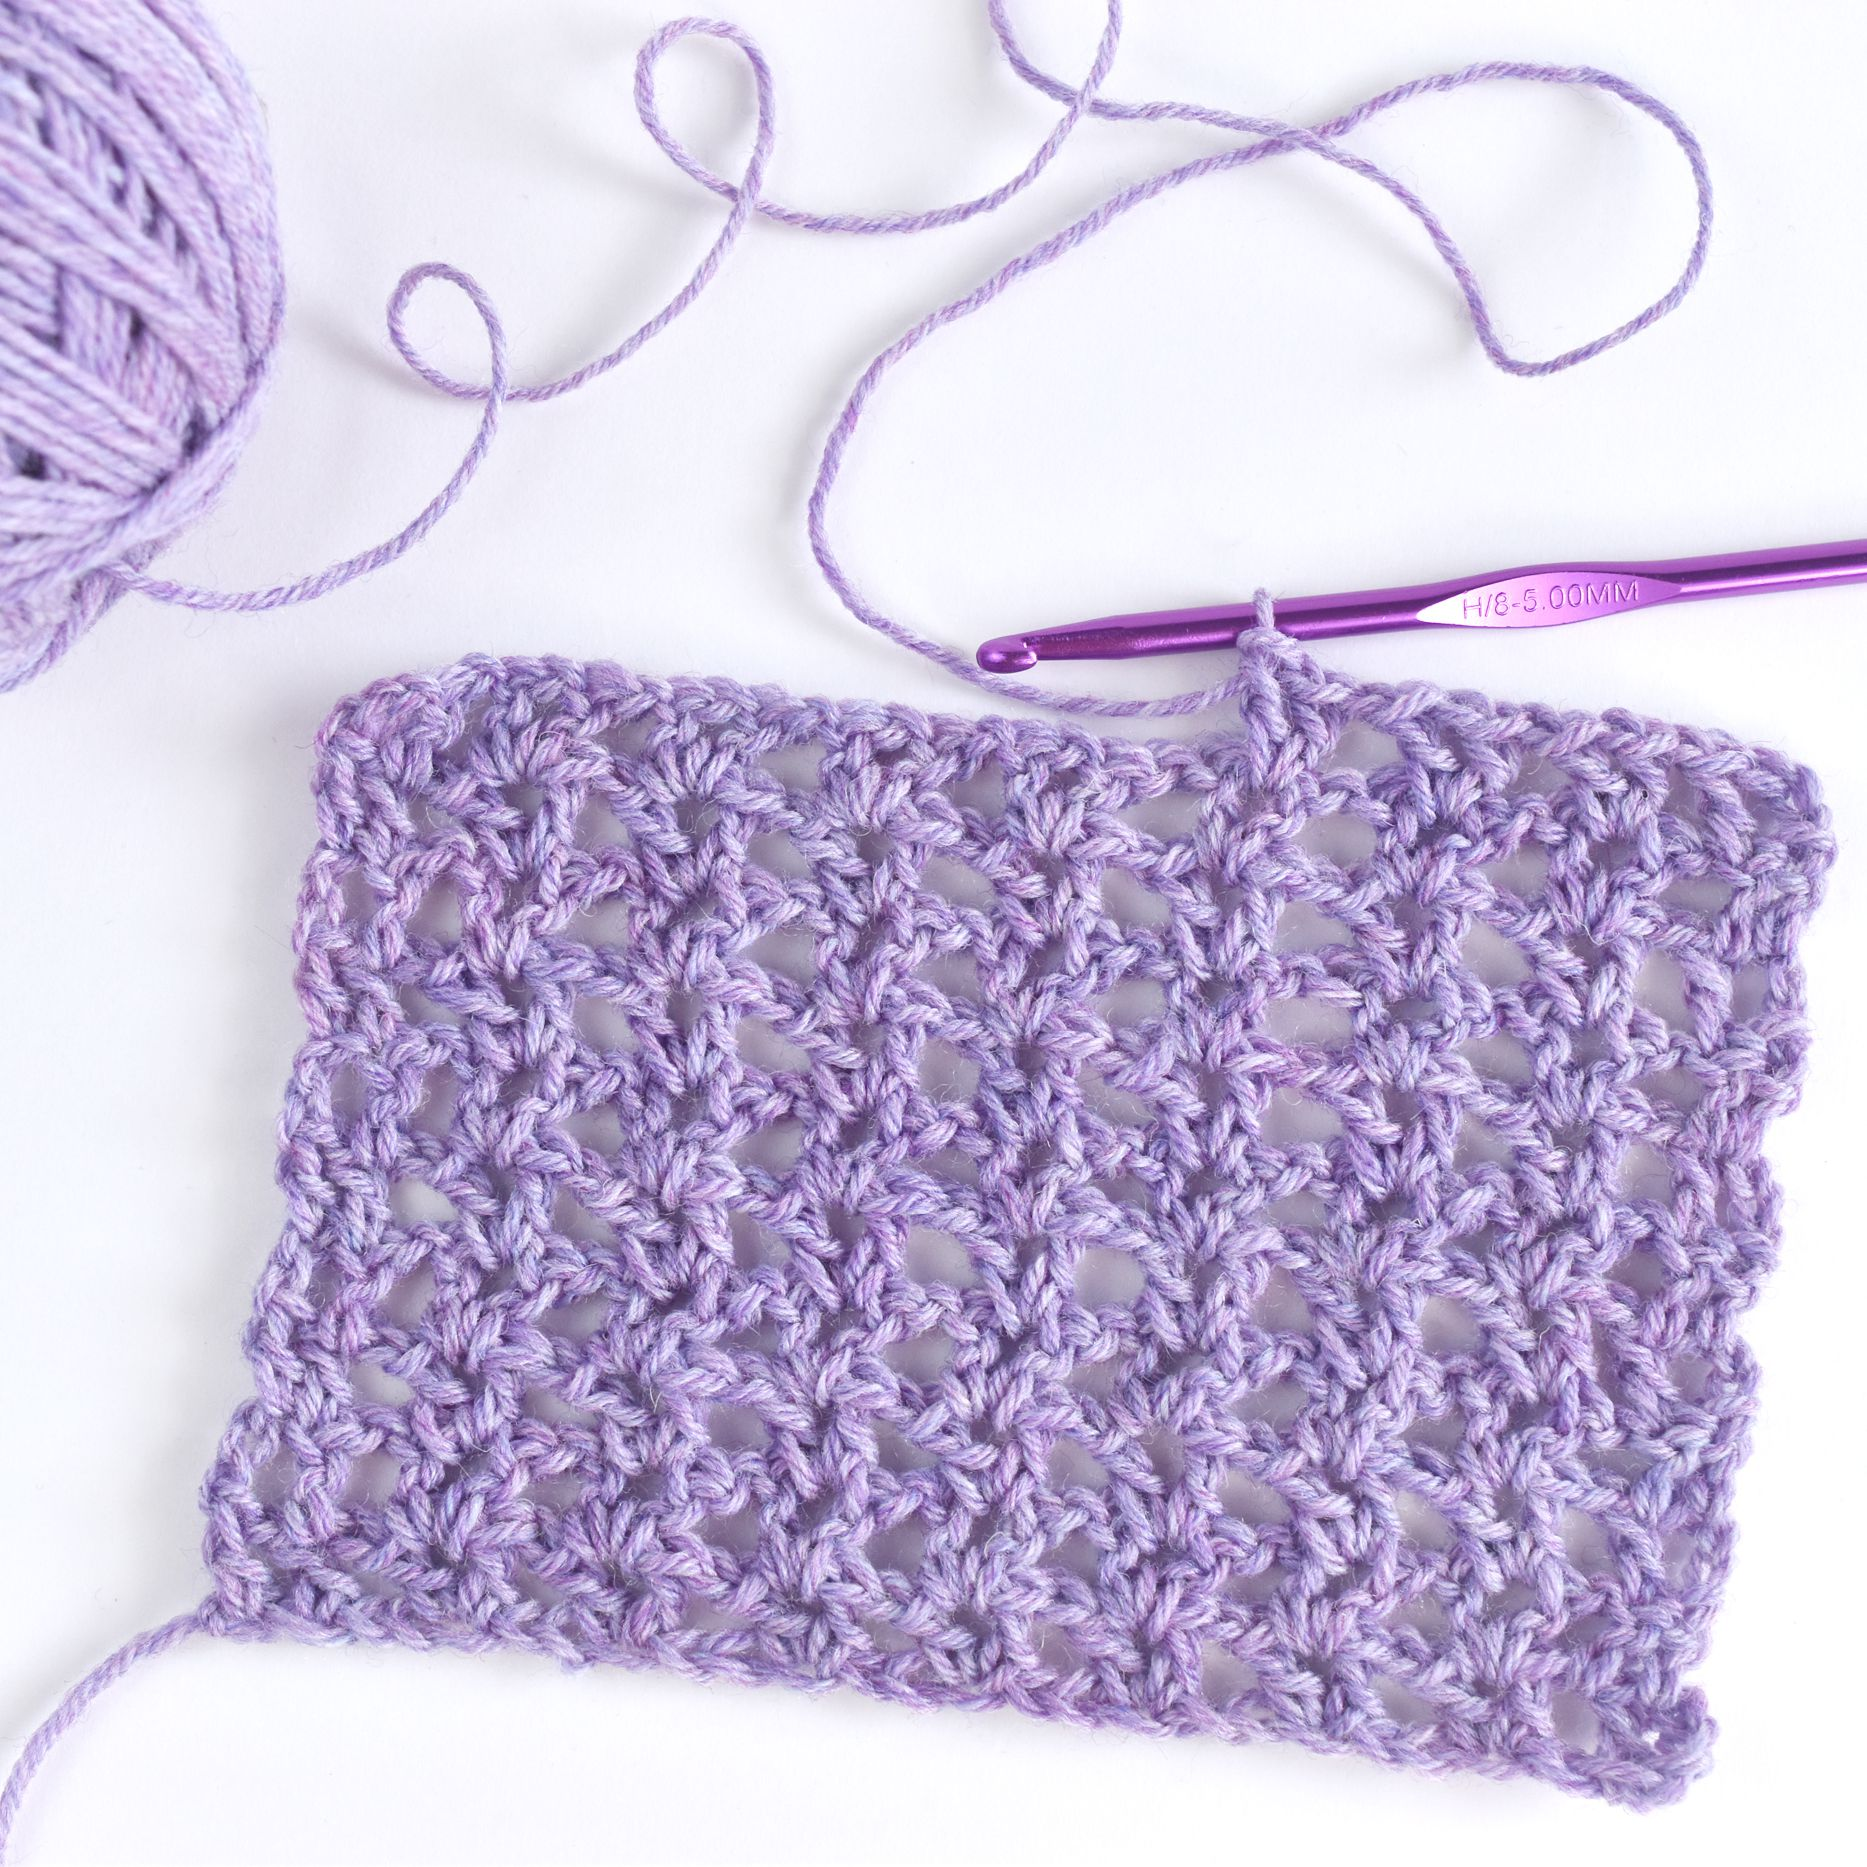 Crochet The Basic V Stitch Easily